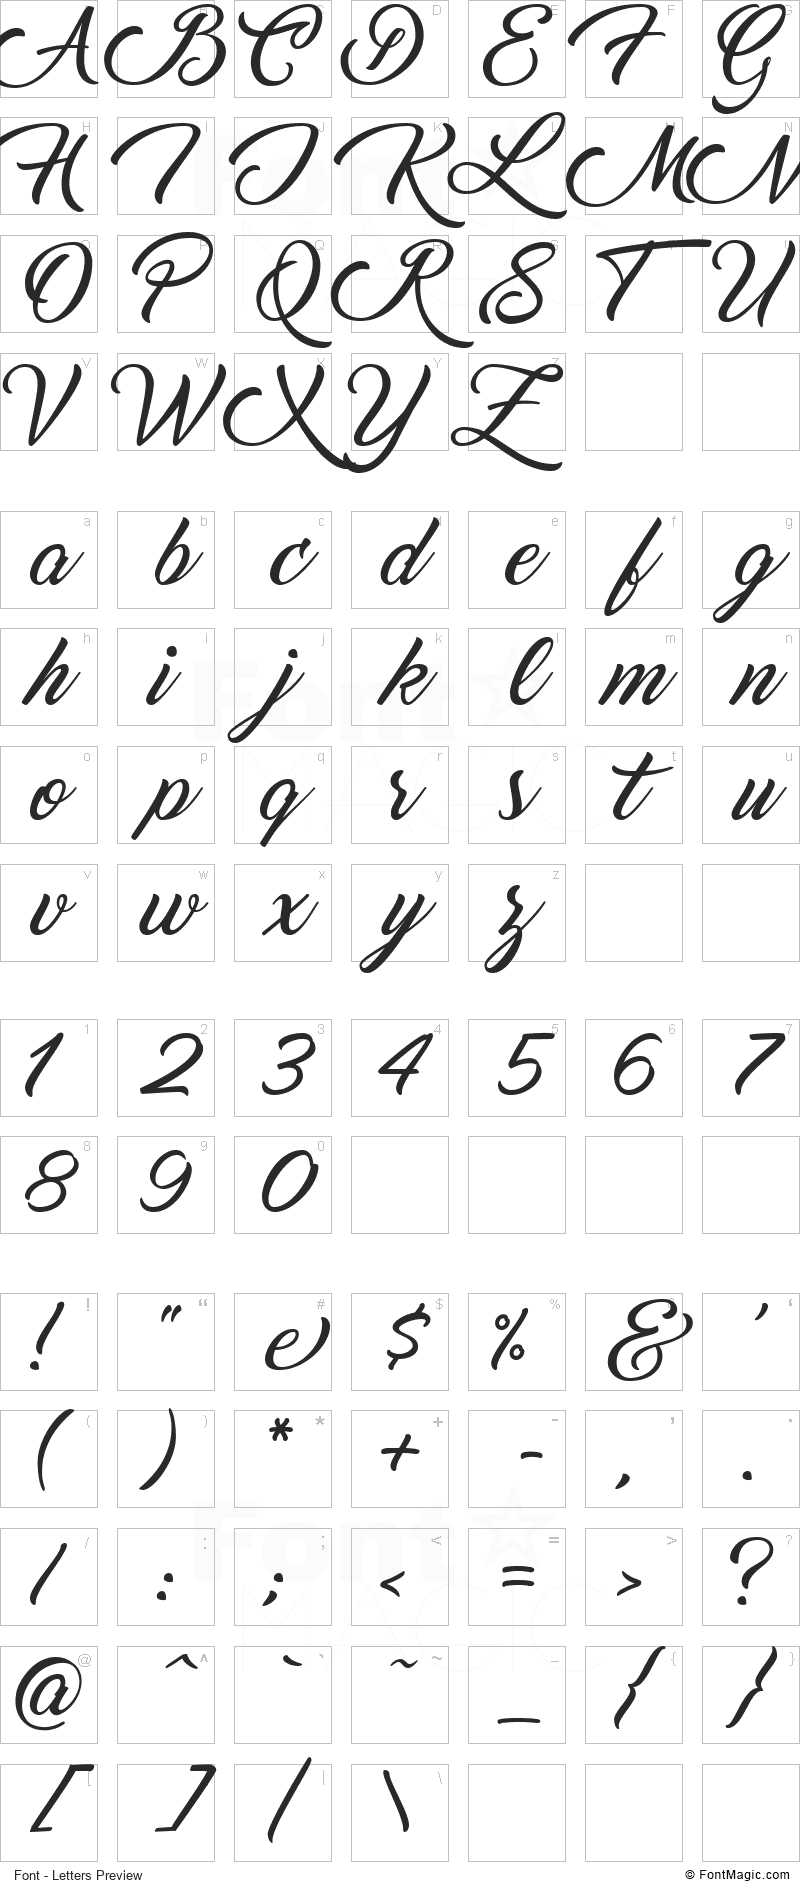 Marguerite Font - All Latters Preview Chart